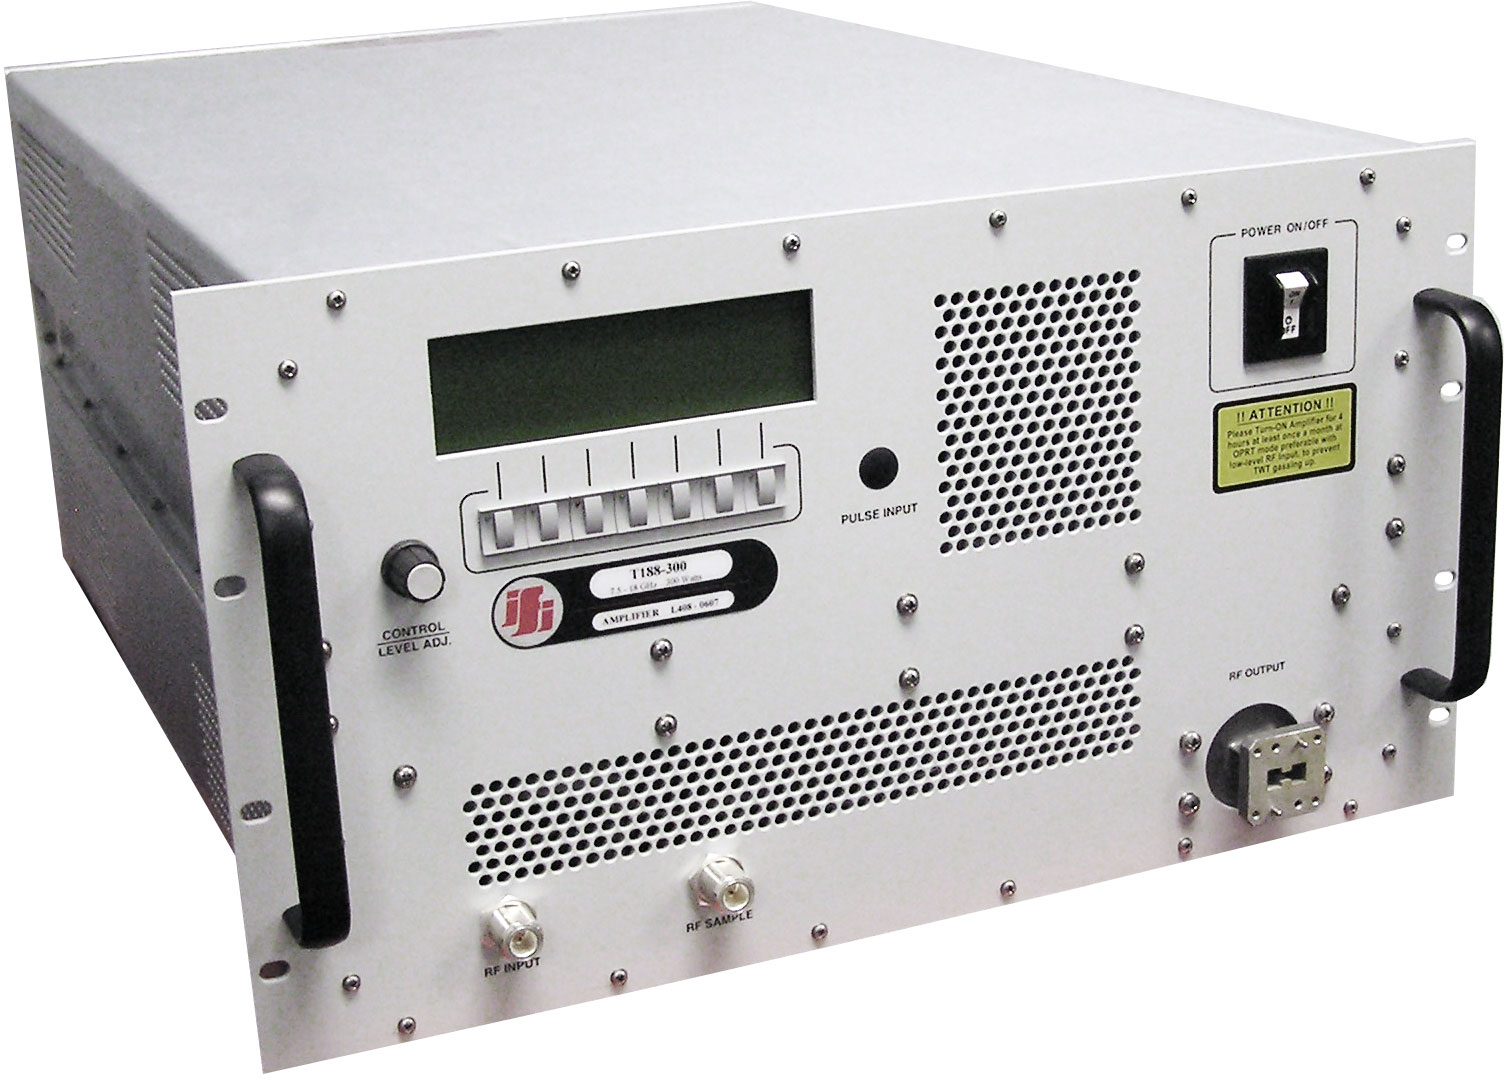 IFI T188-500 High Power Amplifier